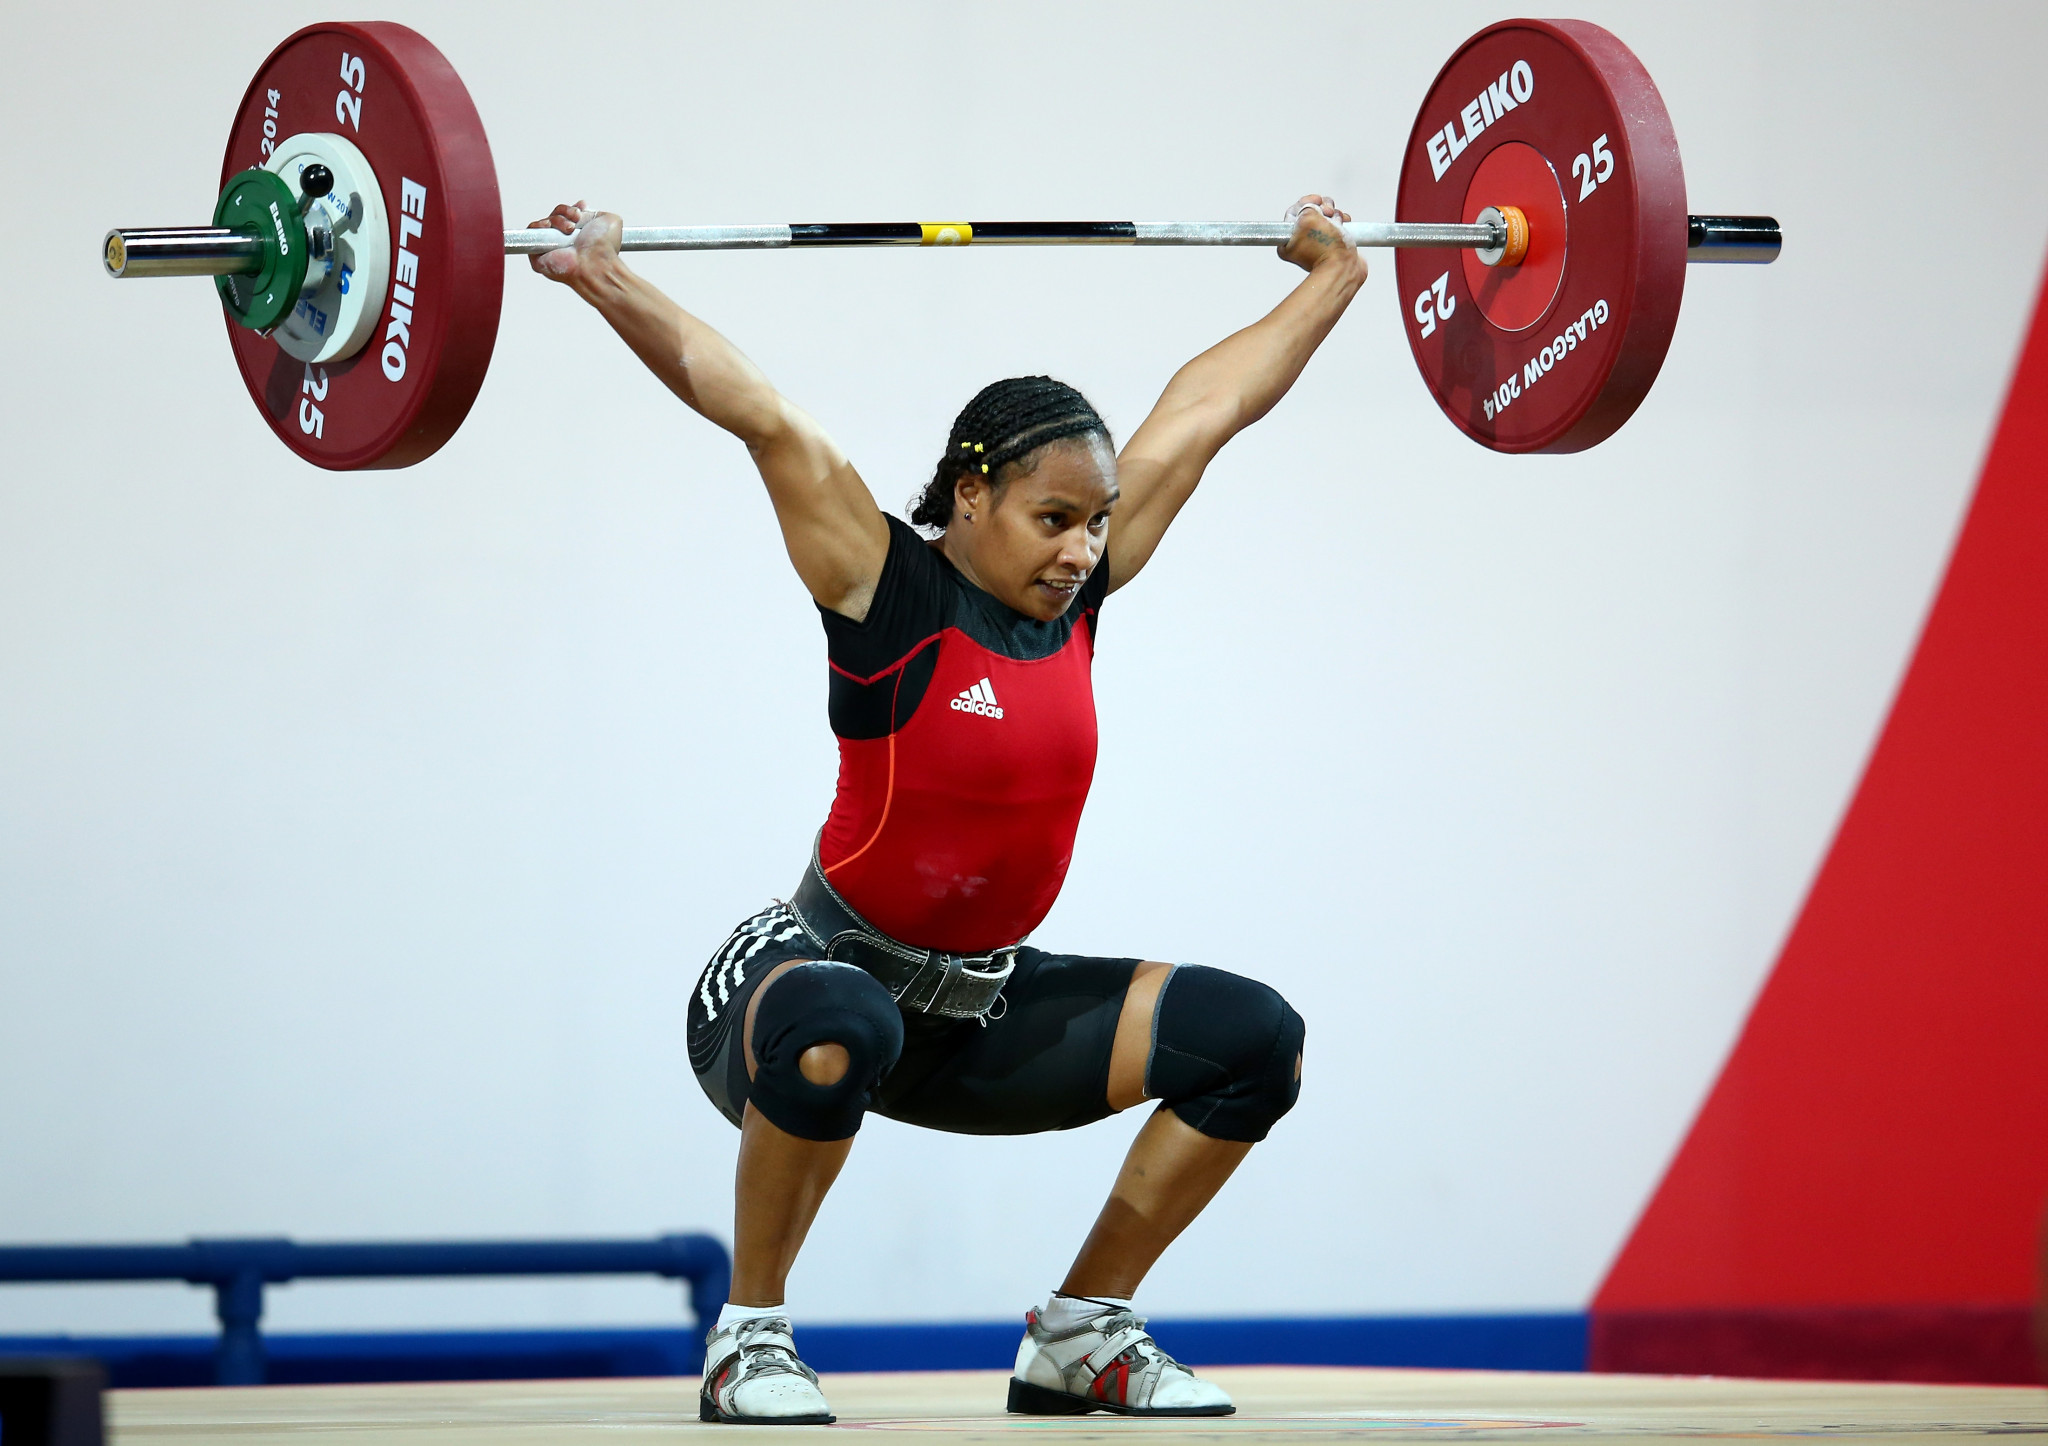 Weightlifting record-breaker Dika Toua back on platform – 21 years after Olympic debut